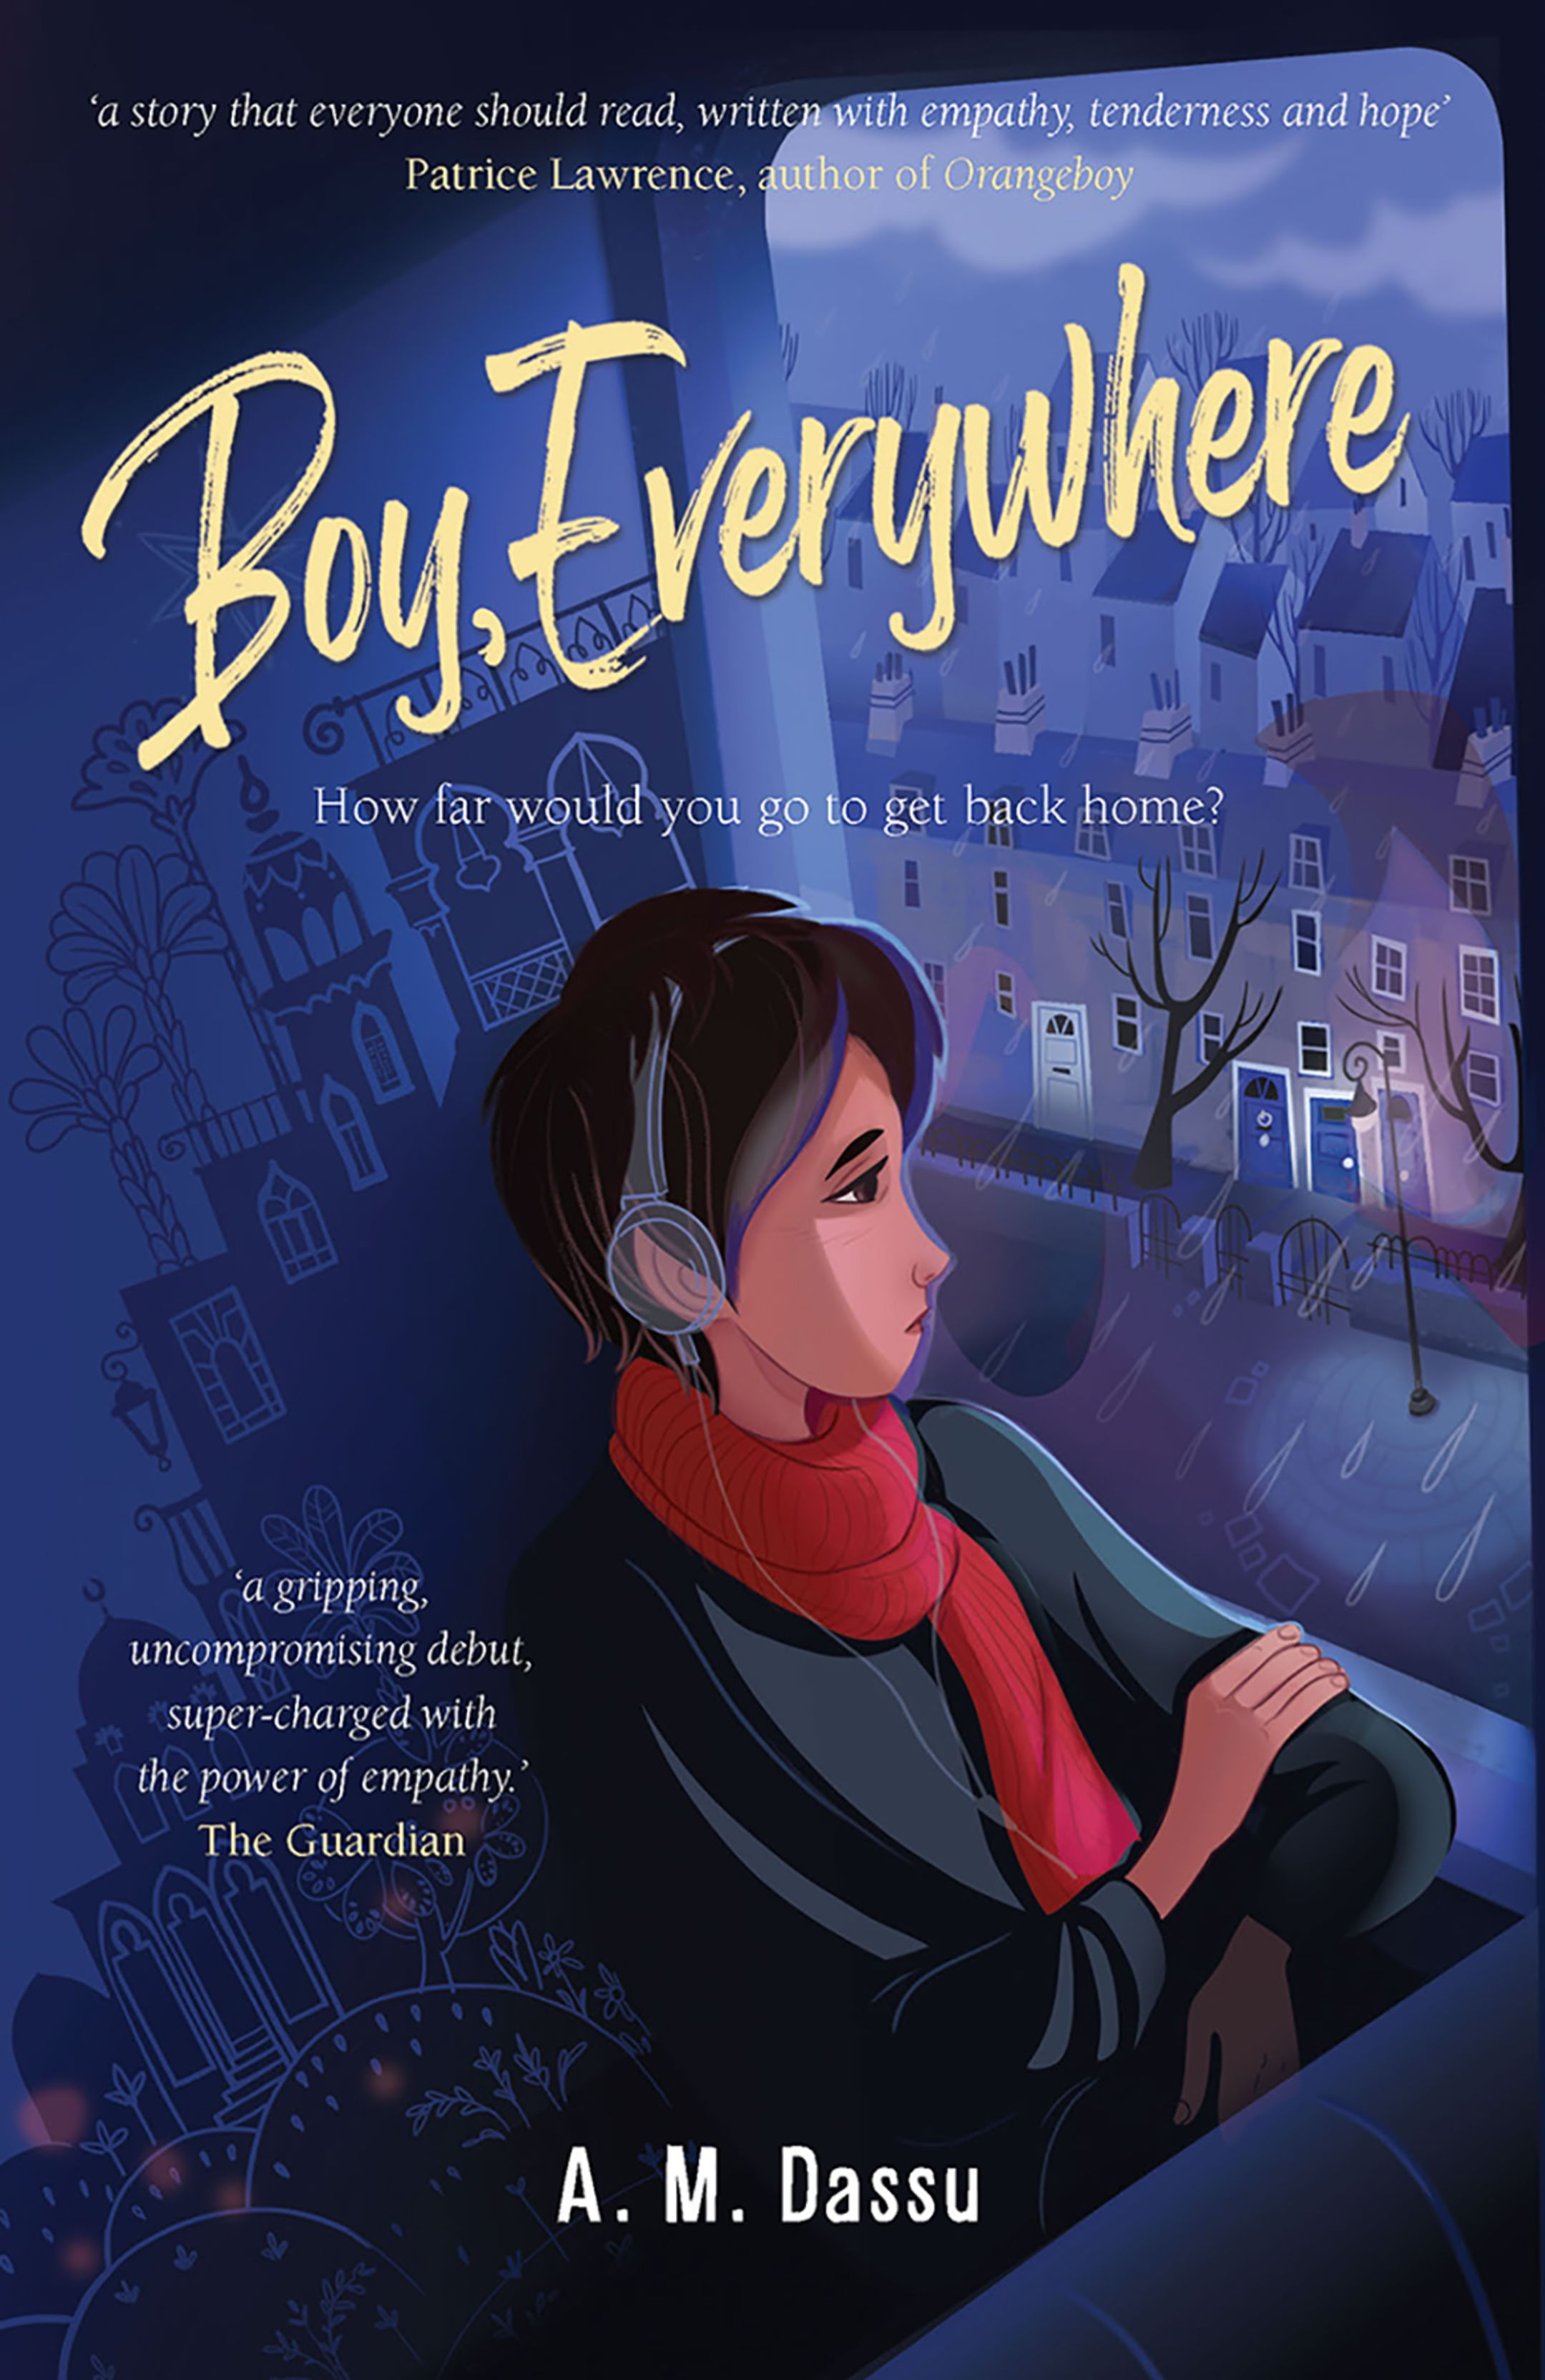 An image of the book cover Boy Everywhere, by A.M. Dassu